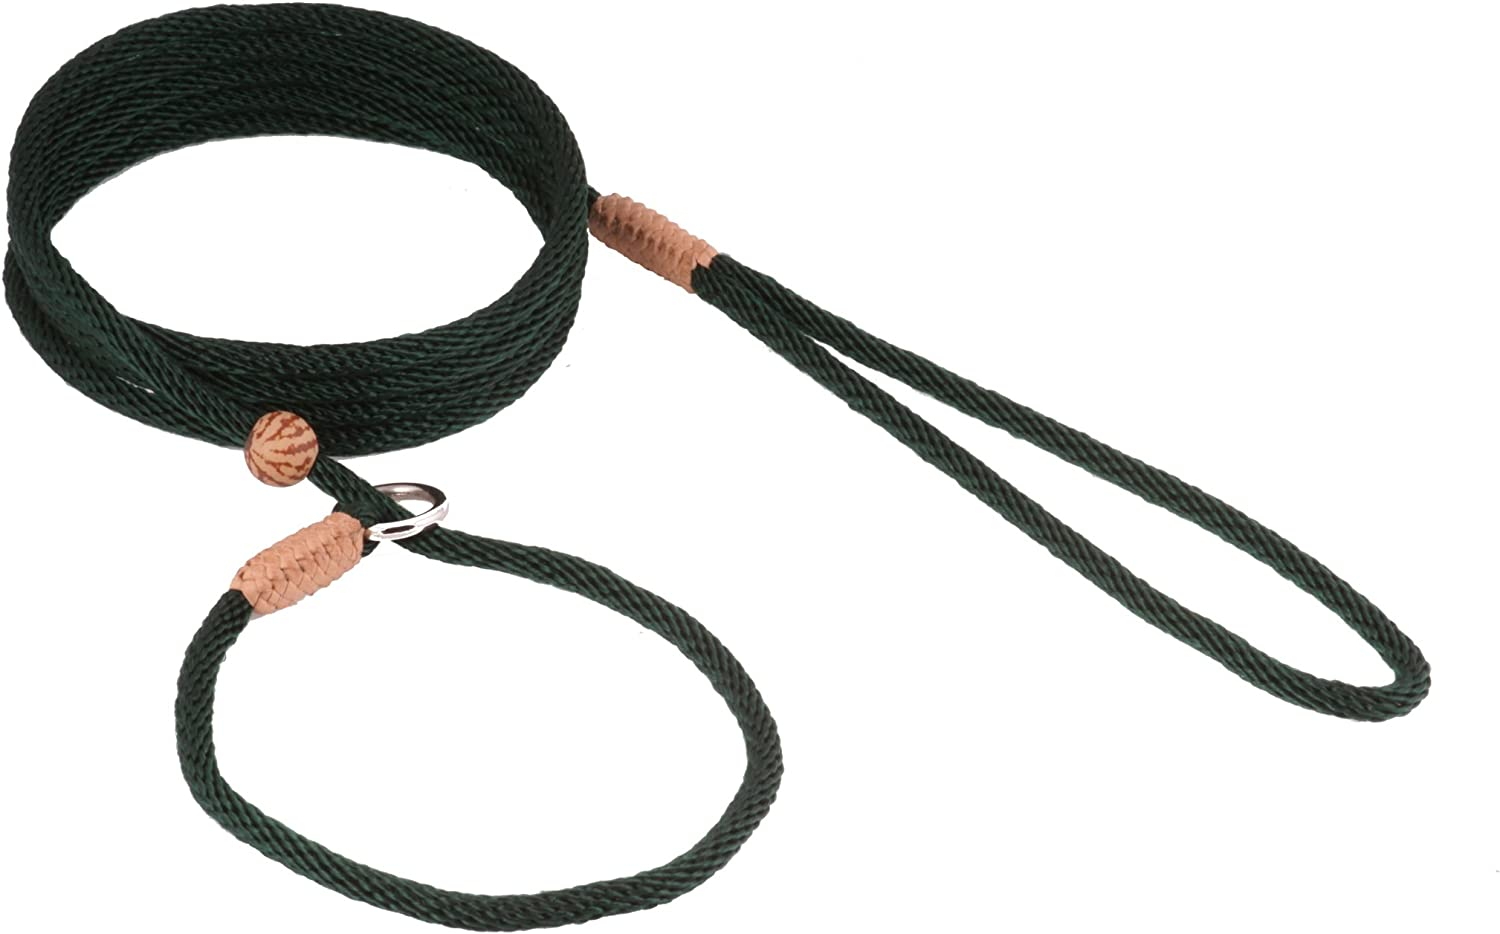 Alvalley Nylon Slip Lead with Stop for Dogs 4mm X 6ft